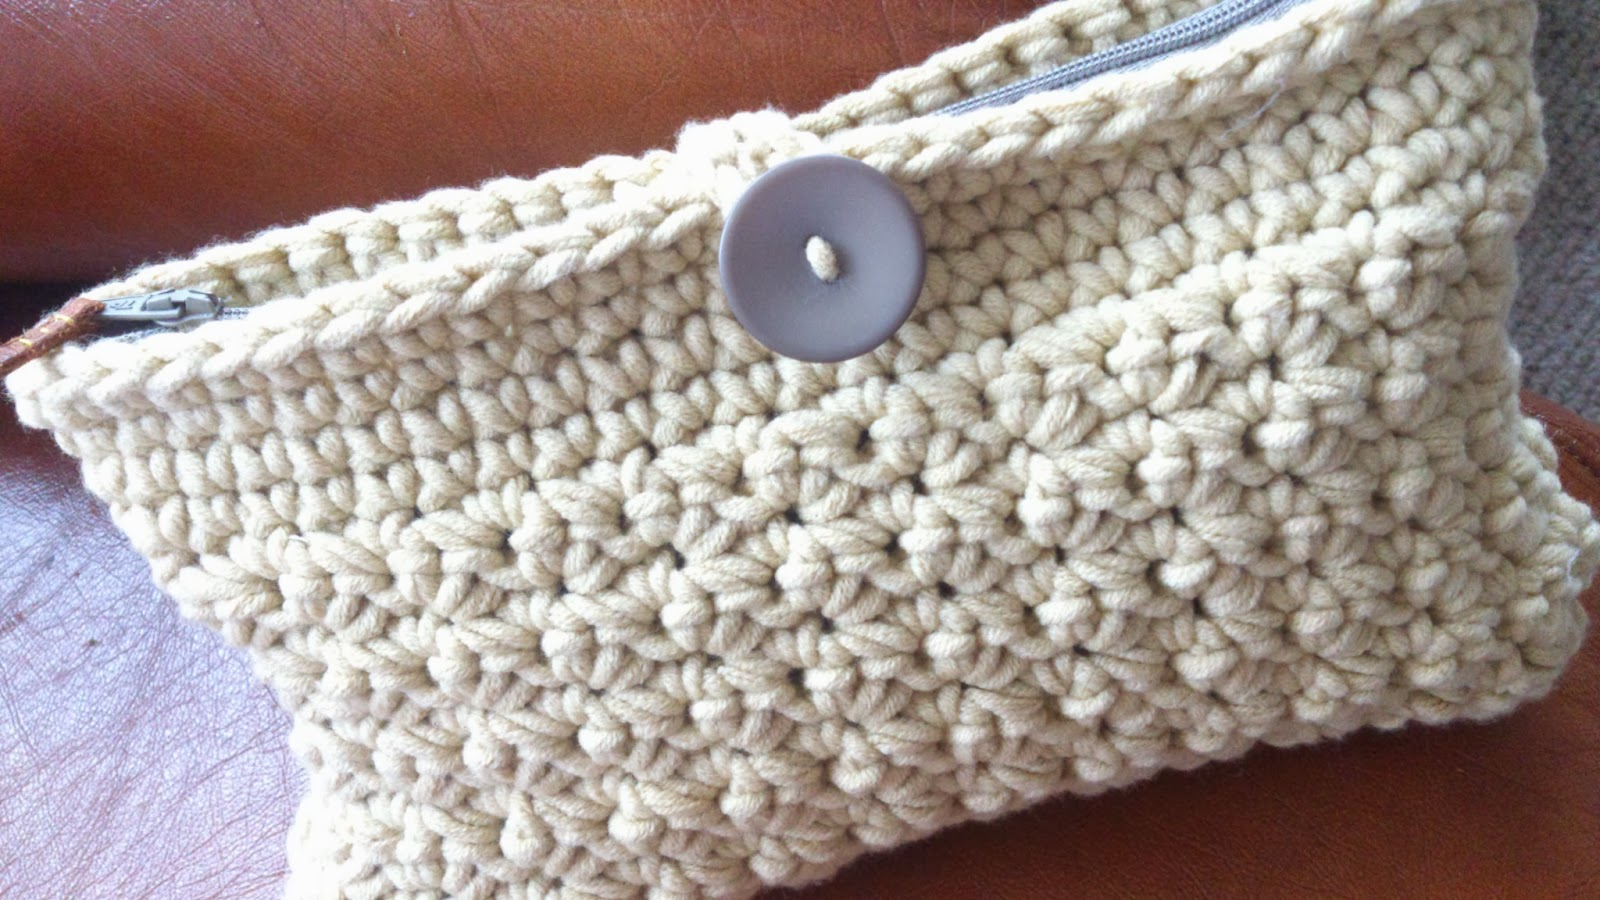 Clutch Bag Crochet : Of Ones Own Making: Crochet. Not just for Grandma: Crochet Clutch Bag